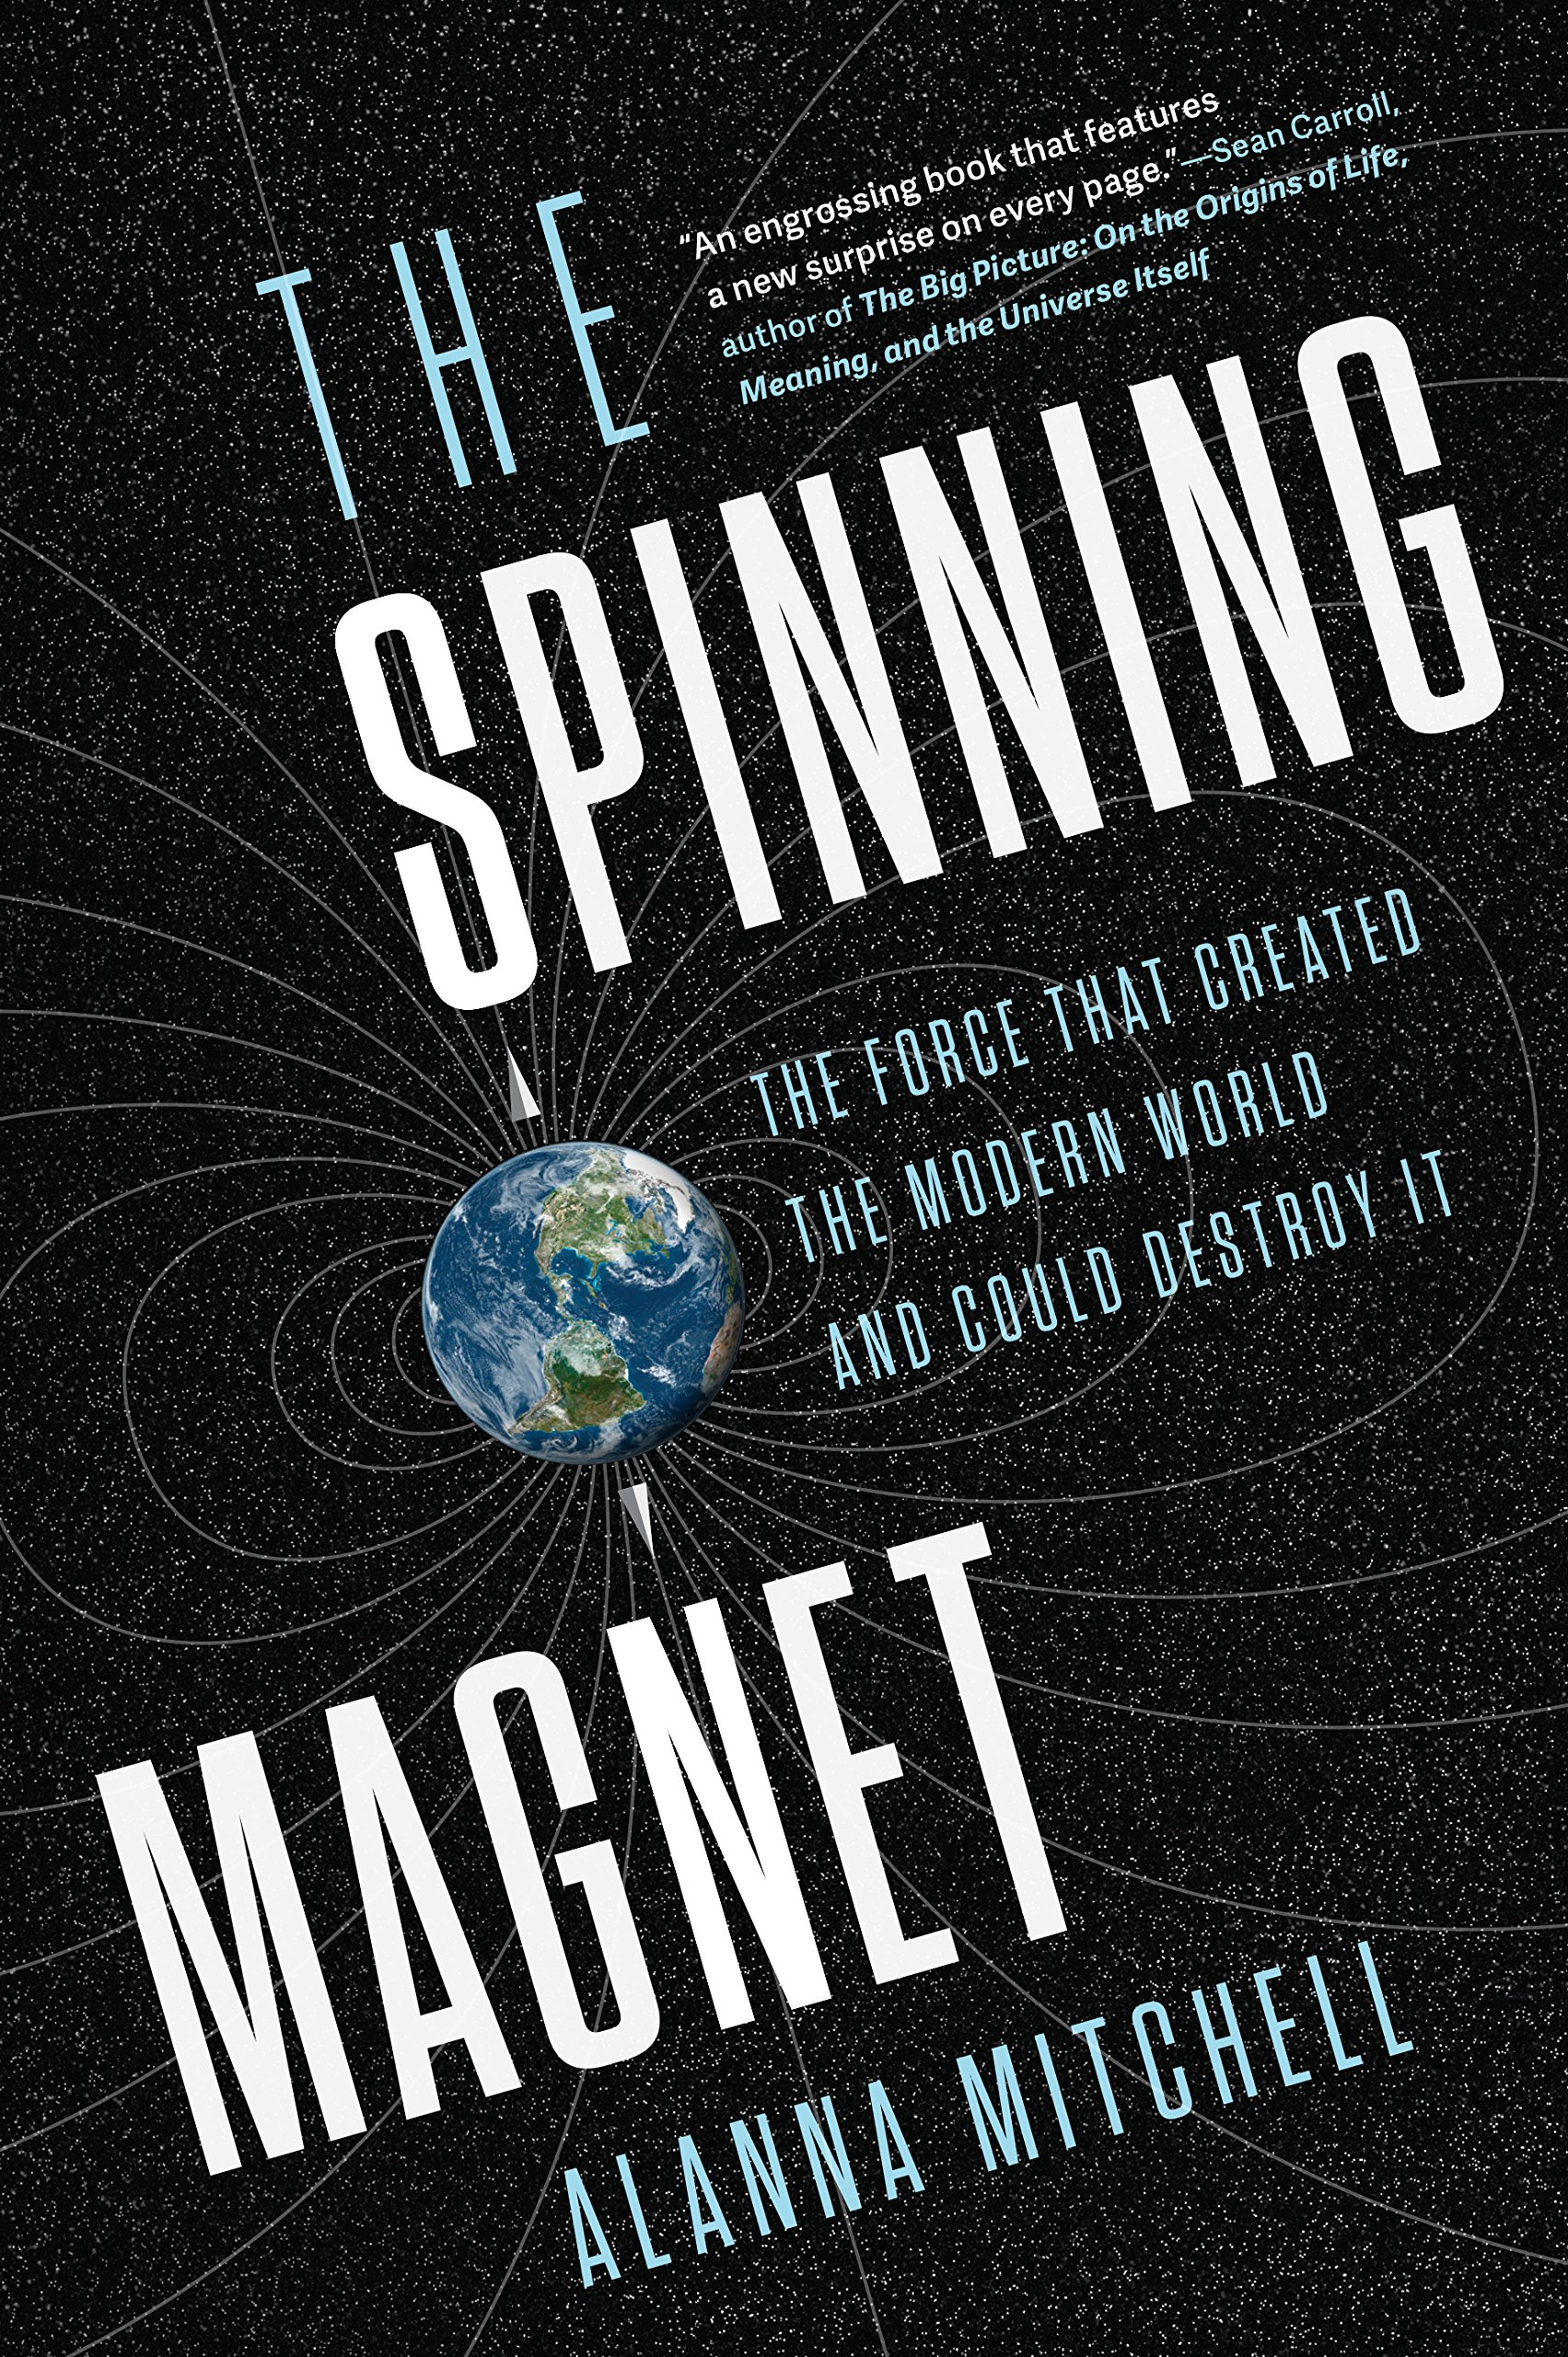 Mitchell, Alanna - Spinning Magnet - US FINAL cover.jpg